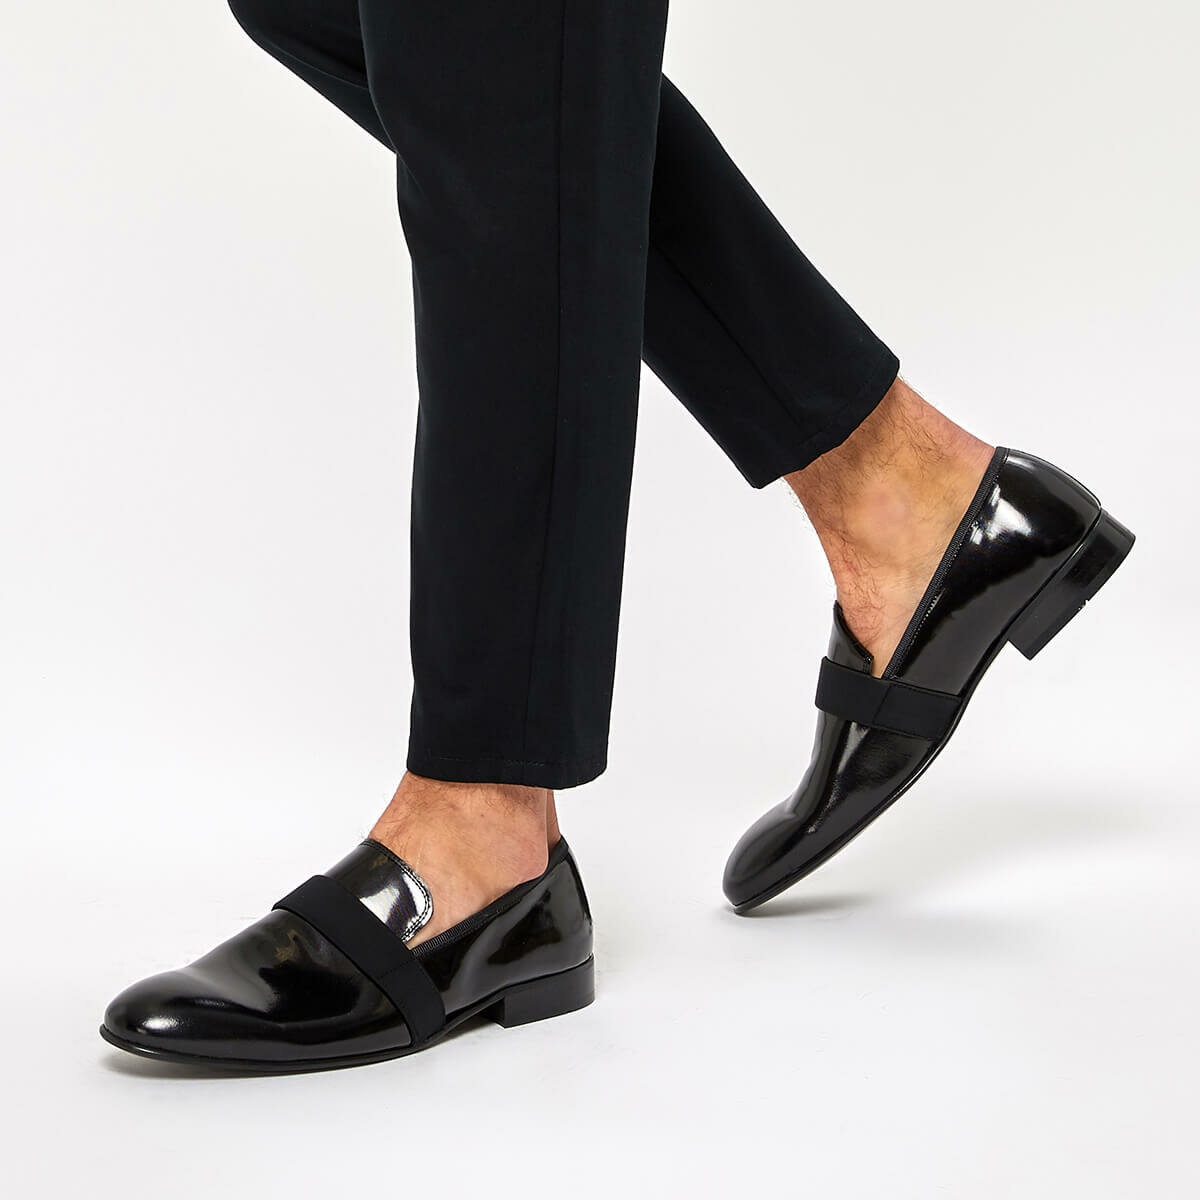 FLO 3839 Black Men 'S Classic Shoes Garamond